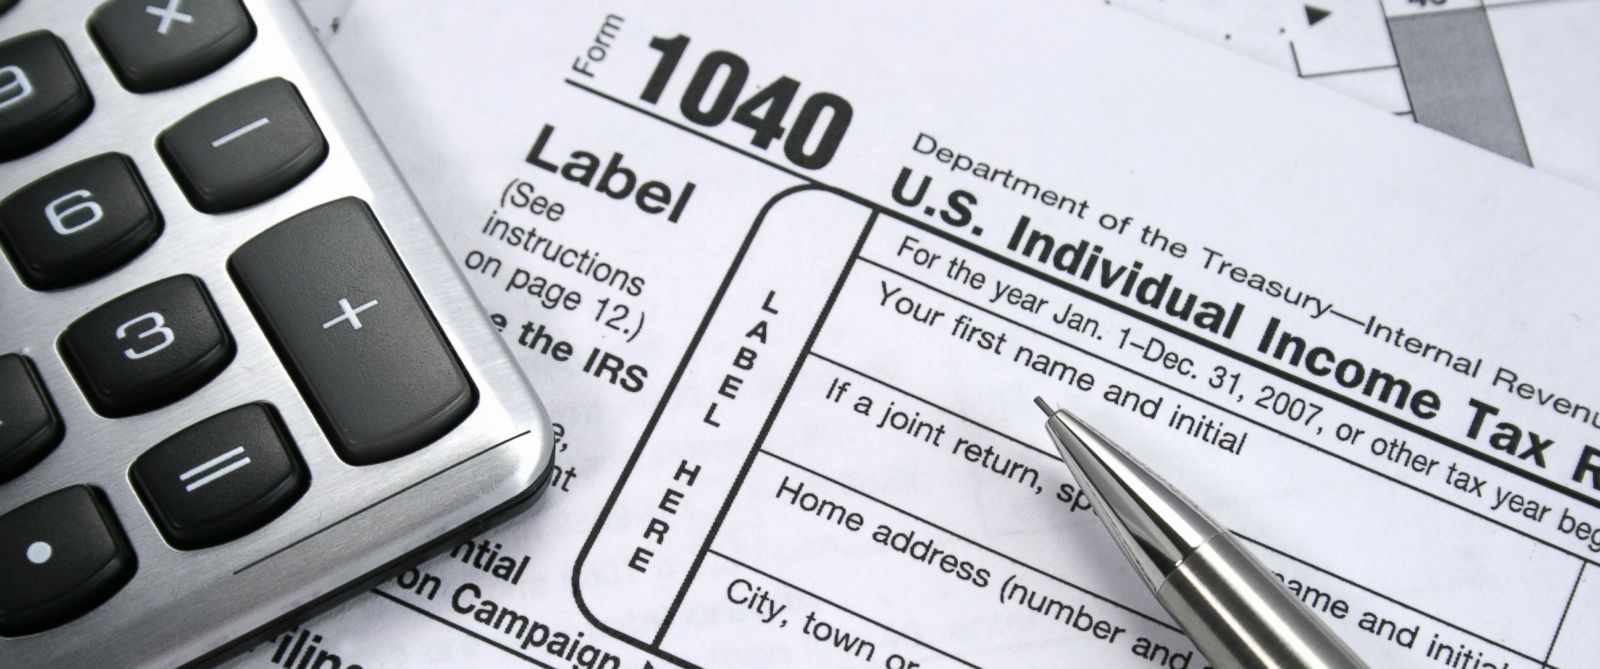 PHOTO: The deadline to file taxes is midnight on April 15.